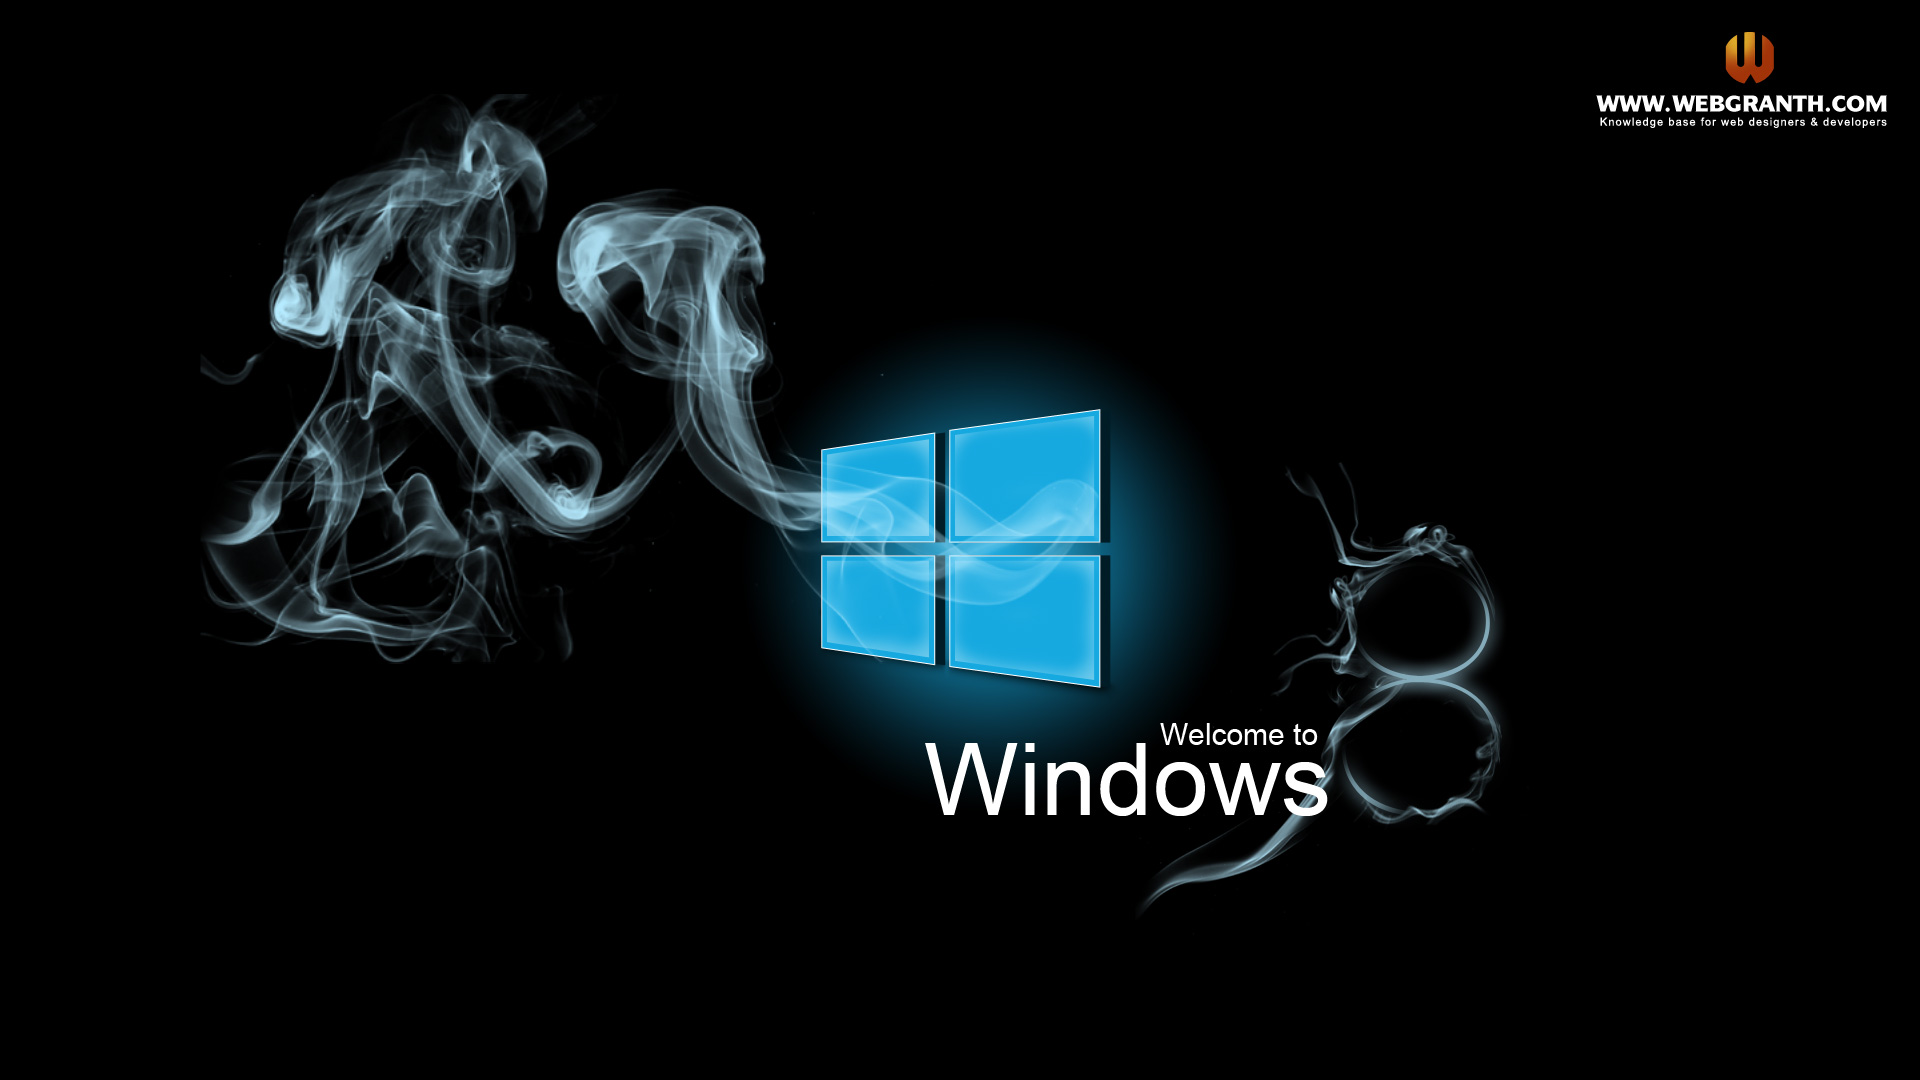 Living Wallpaper For Windows 8